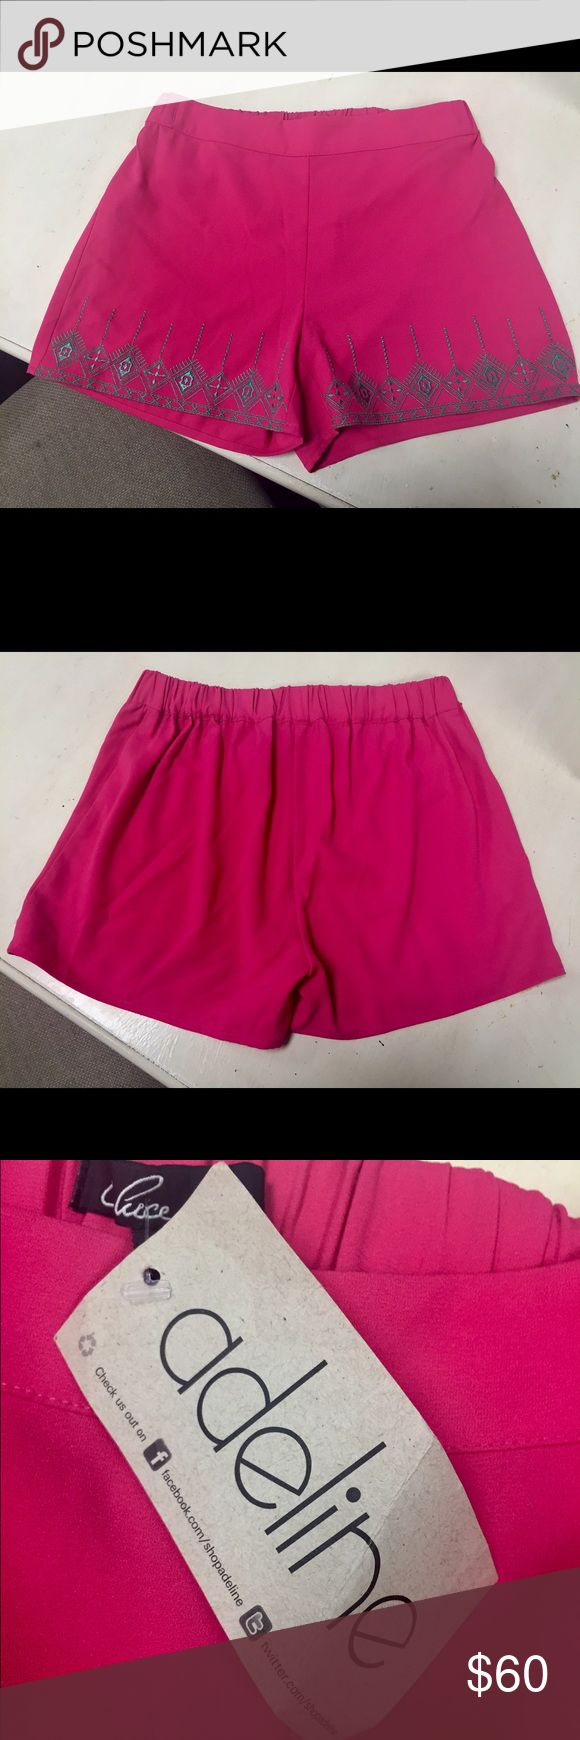 Adeline Pink Tribal Print Shorts Hot pink shorts with green embroidered tribal print! Super cute and can be dressed up or down, great for an afternoon out or brunch with friends! From a cute boutique in Texas, no longer regularly sold!  Smoke-free, pet-free home' Adeline Shorts